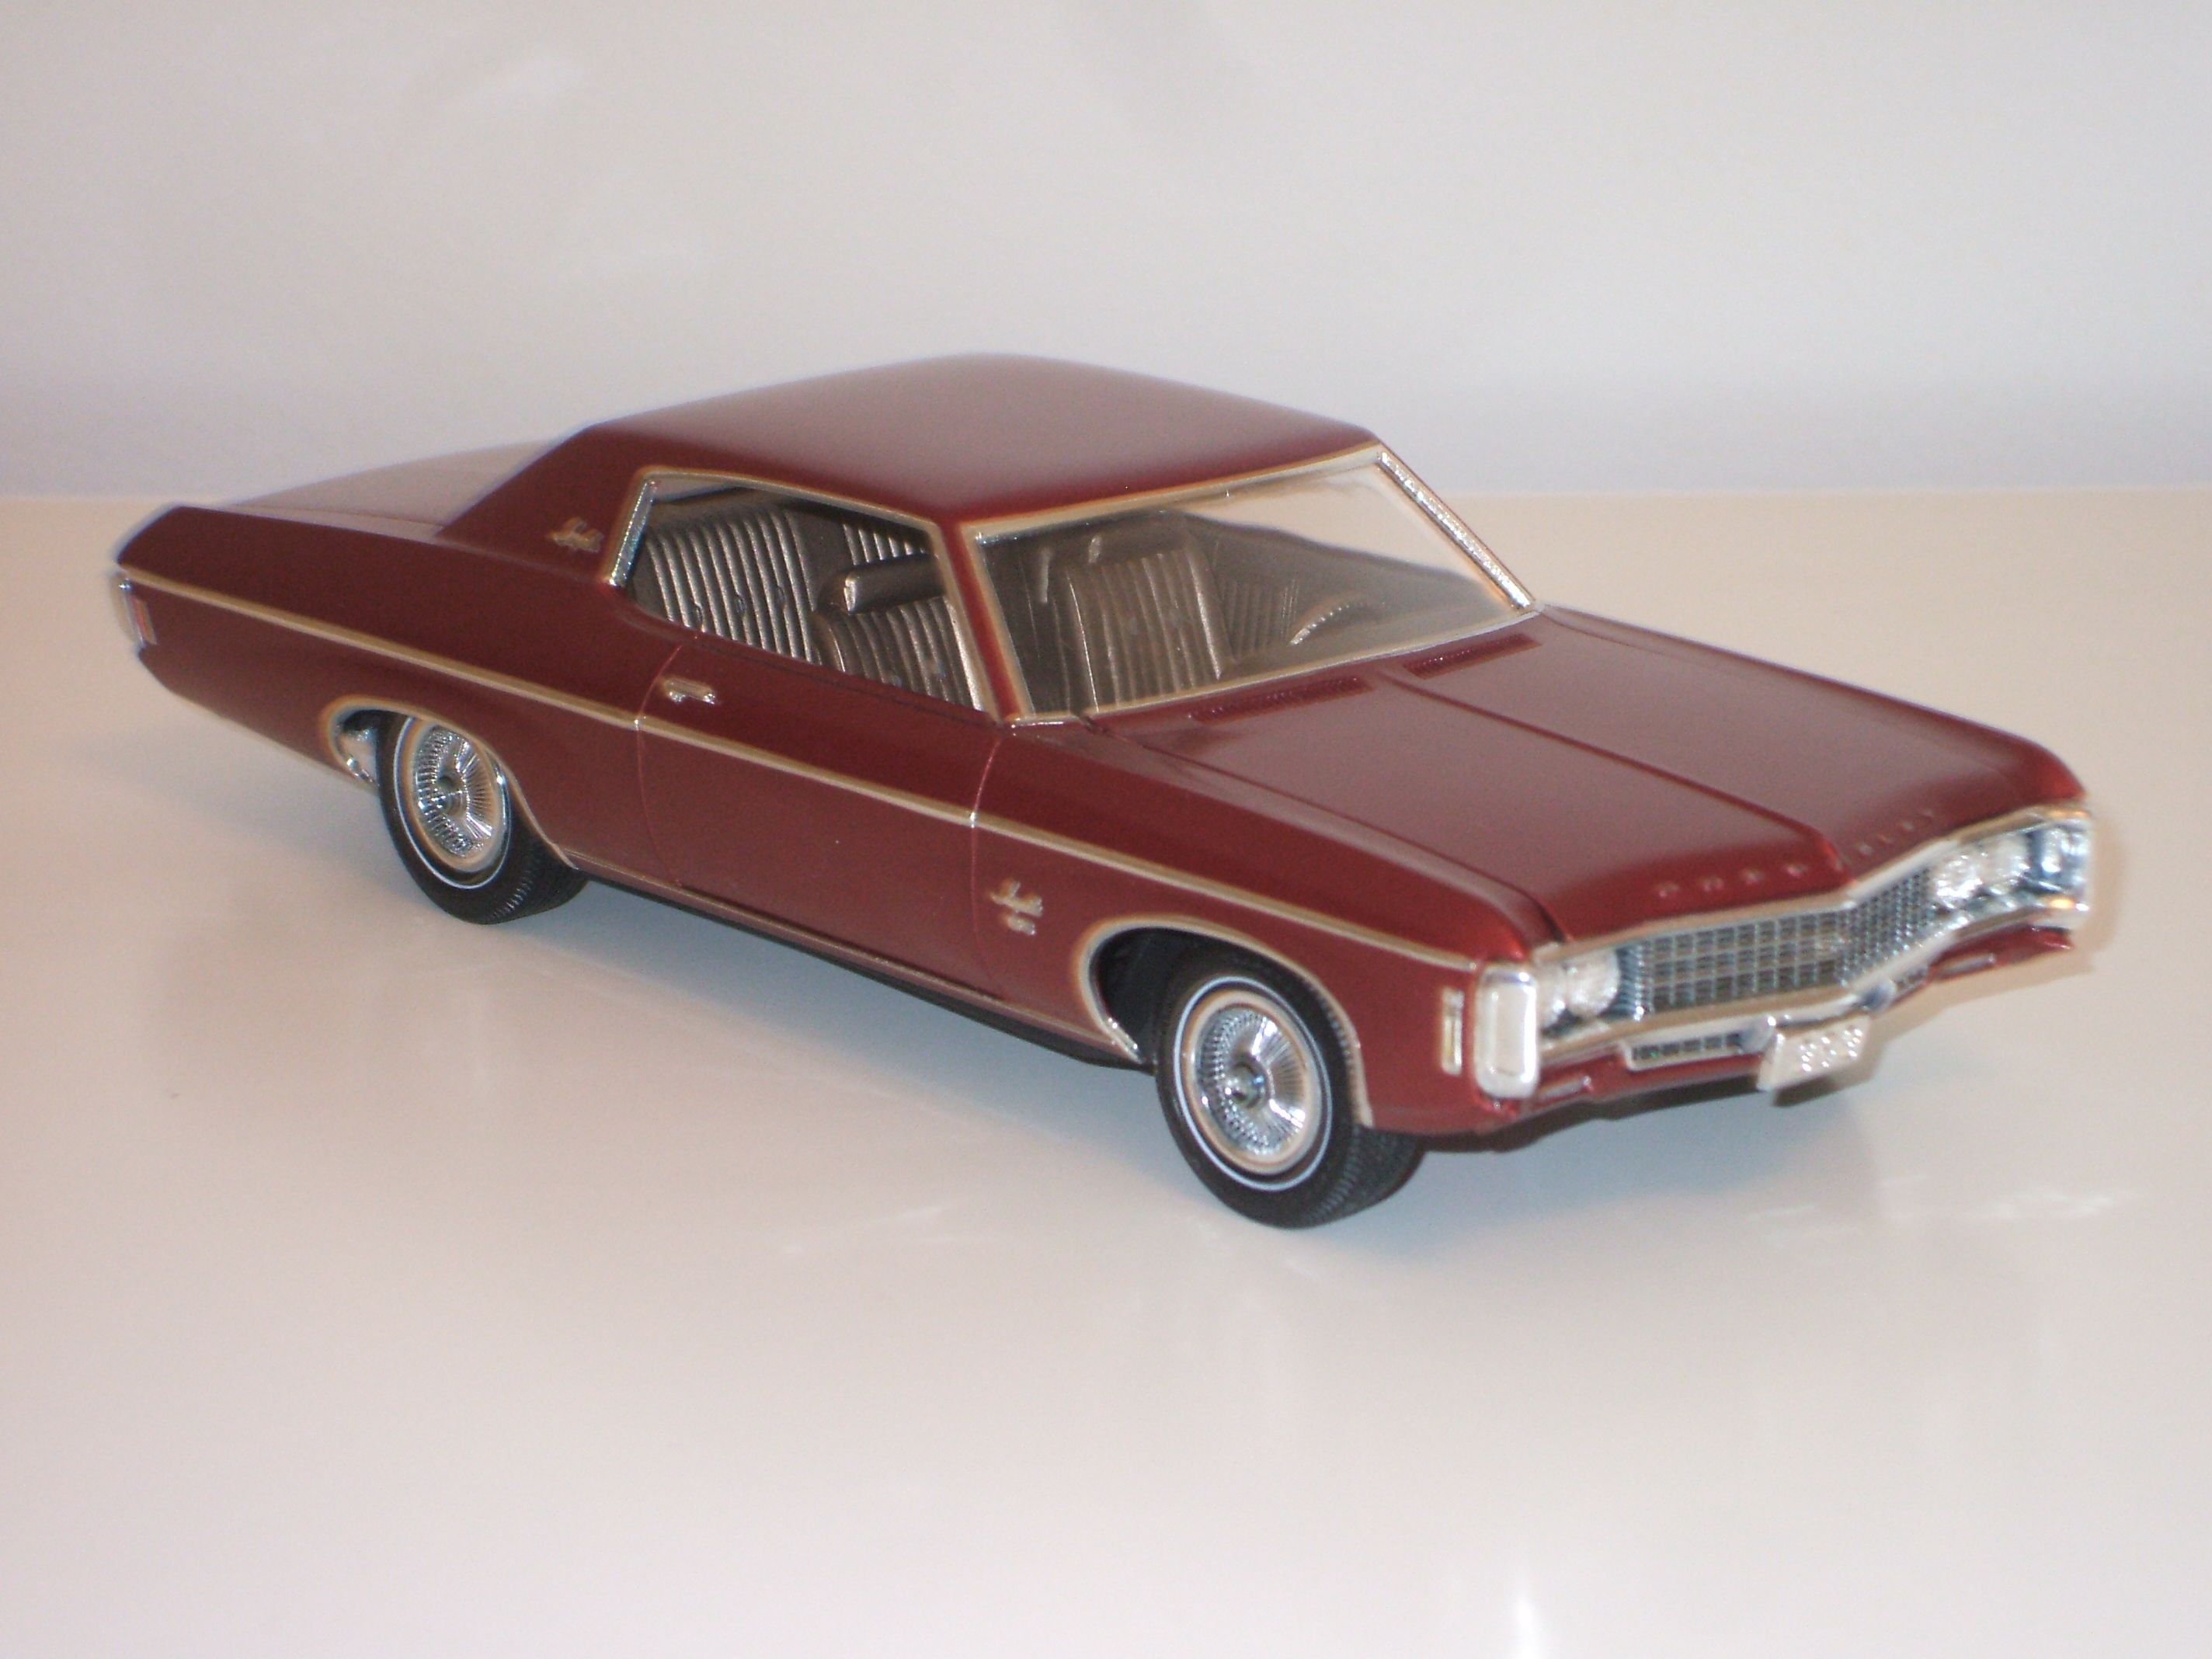 mpc 1969 impala ss scale modelbuilding chevy models. Black Bedroom Furniture Sets. Home Design Ideas